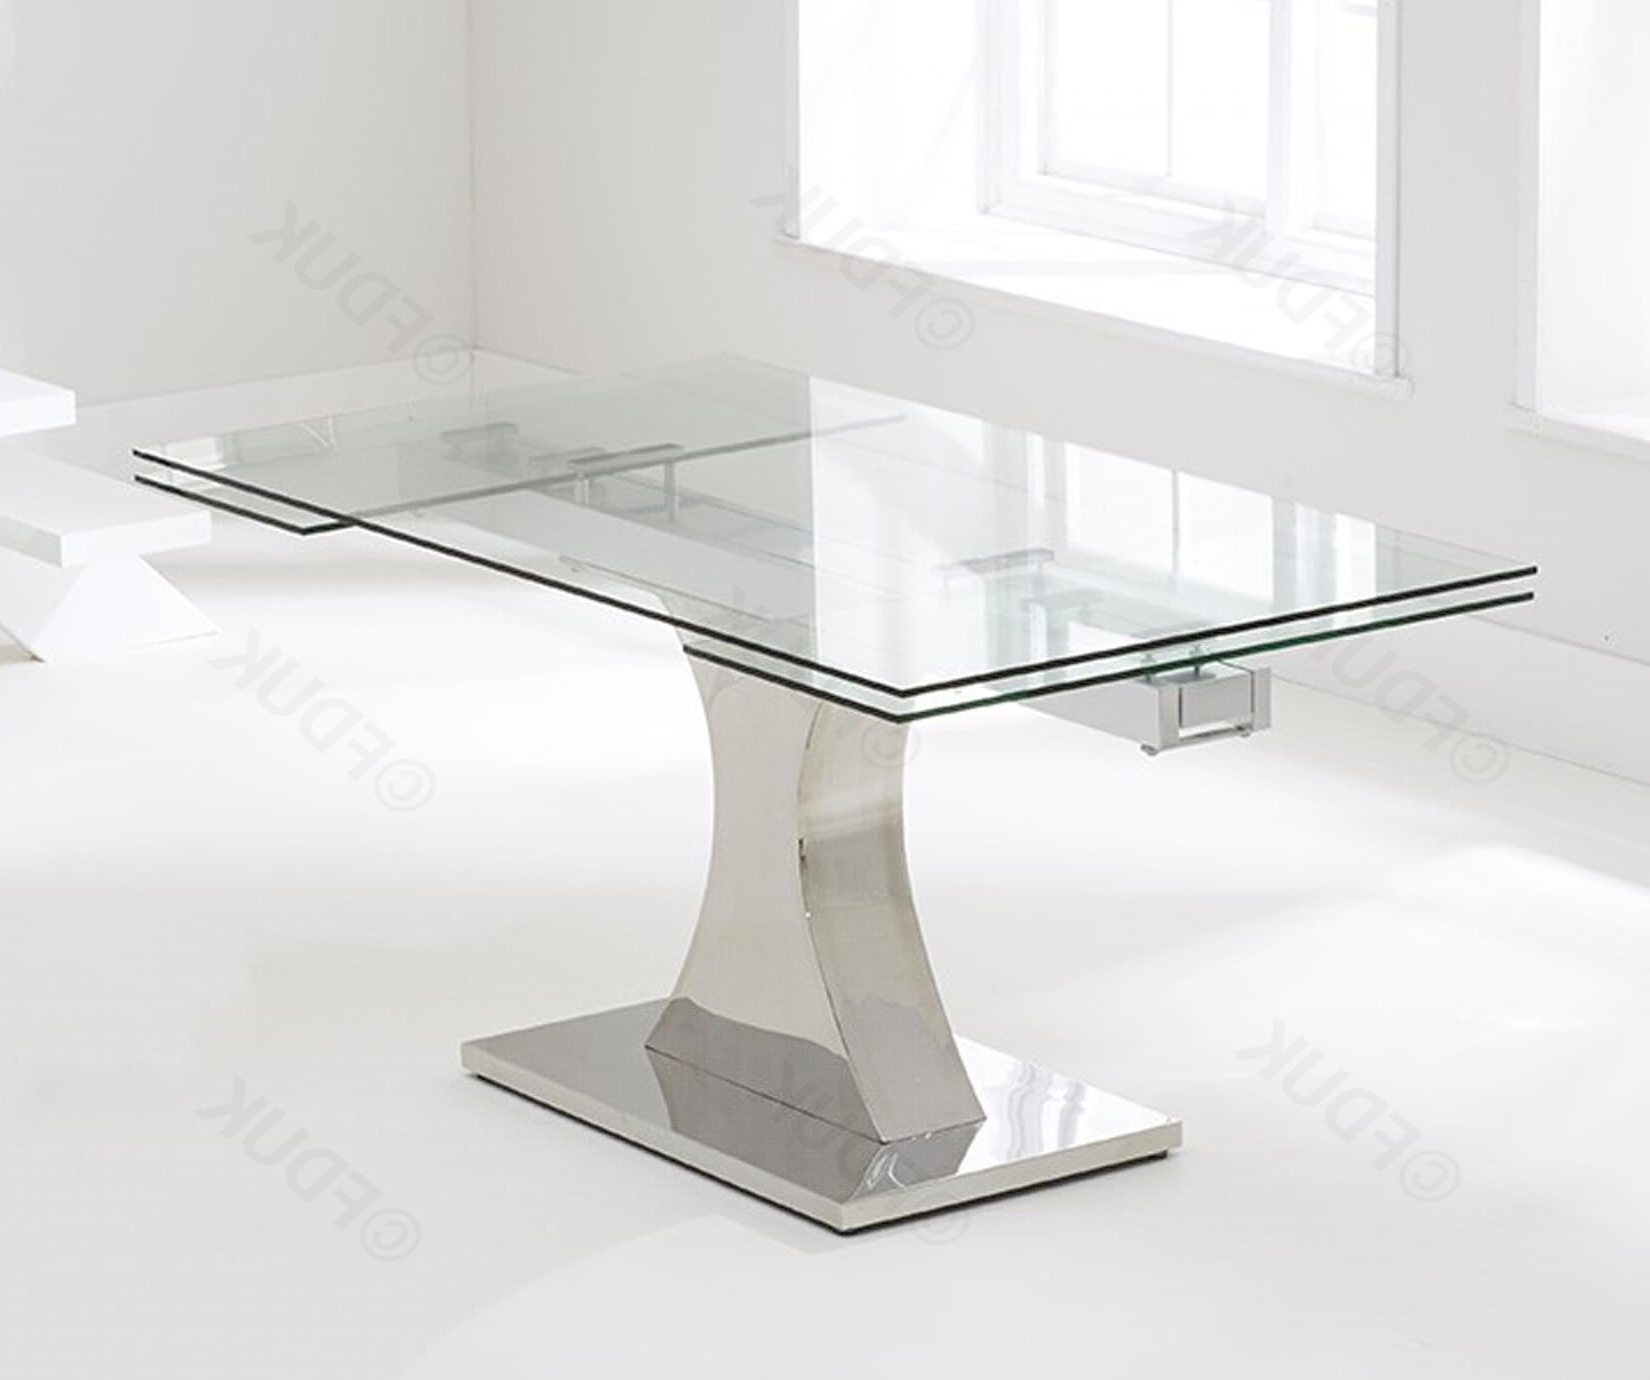 Glass Extending Dining Tables for Popular Mark Harris Amber Glass Extending Dining Table Only Fduk Best Price Guarantee We Will Beat Our Competitors Price! Give Our Sales Team A Call On 0116